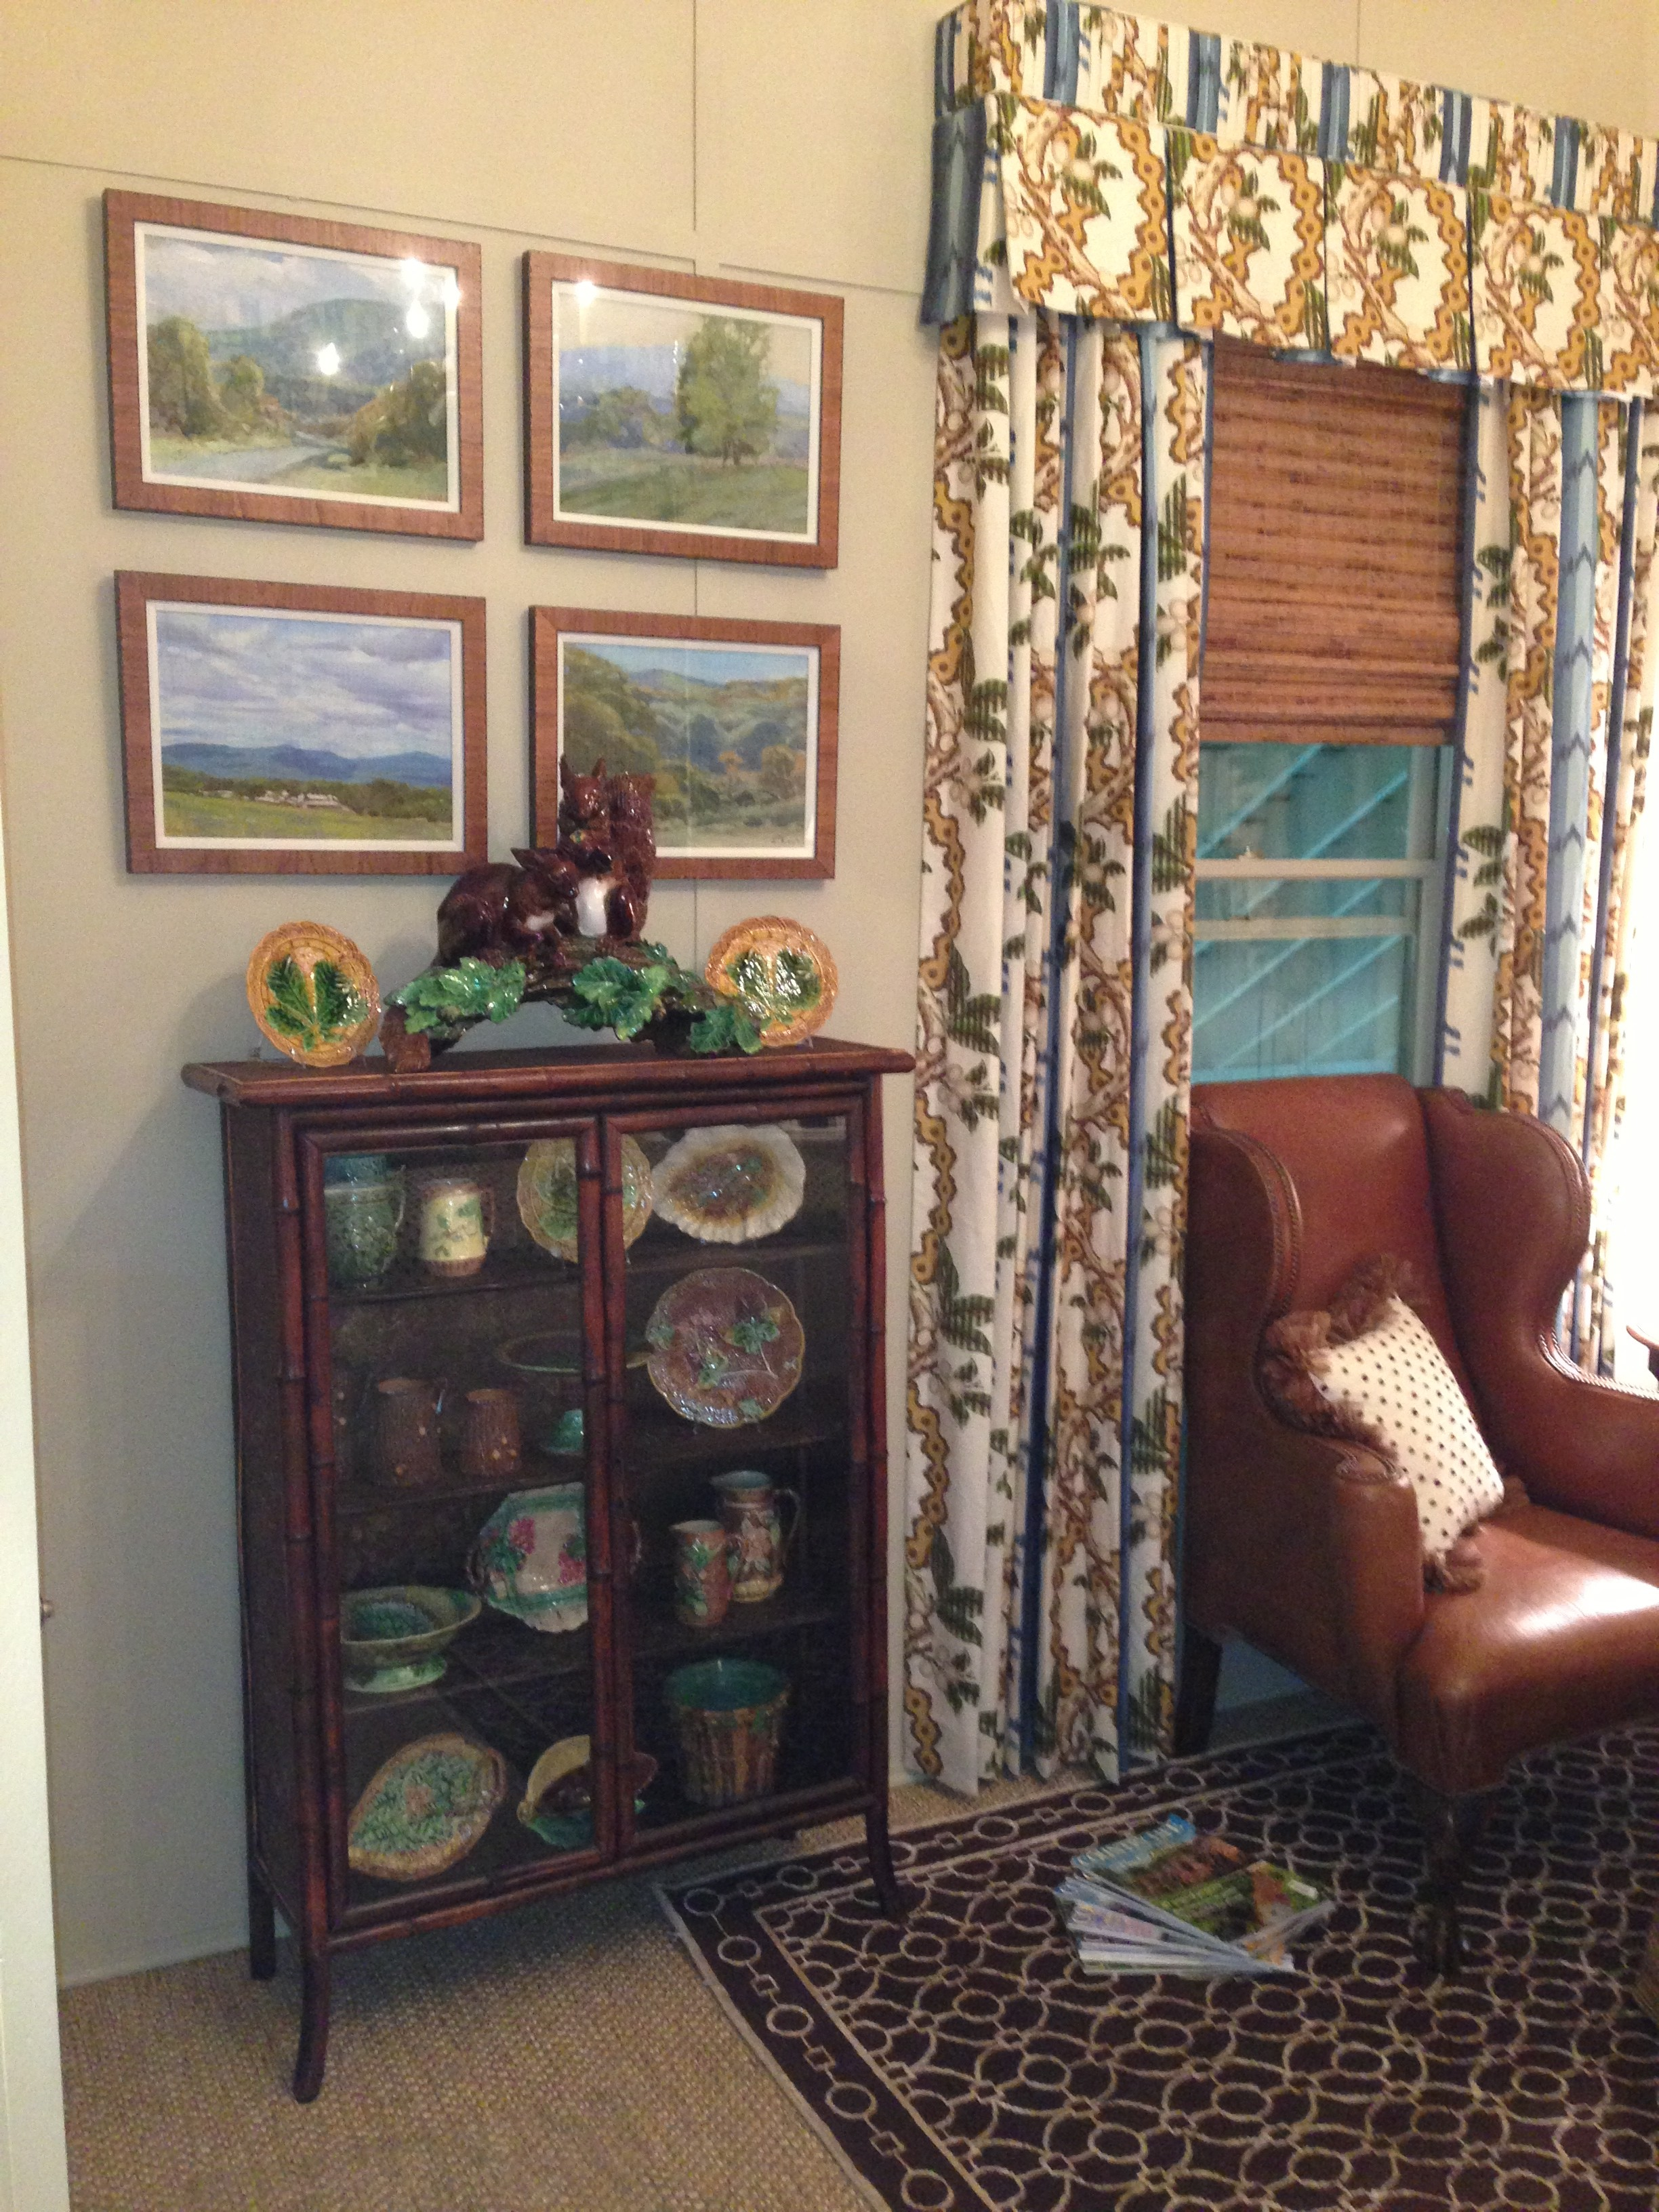 north carolina interior designer and author kathryn greeley presents 2013 cashiers designers showhouse bunk room